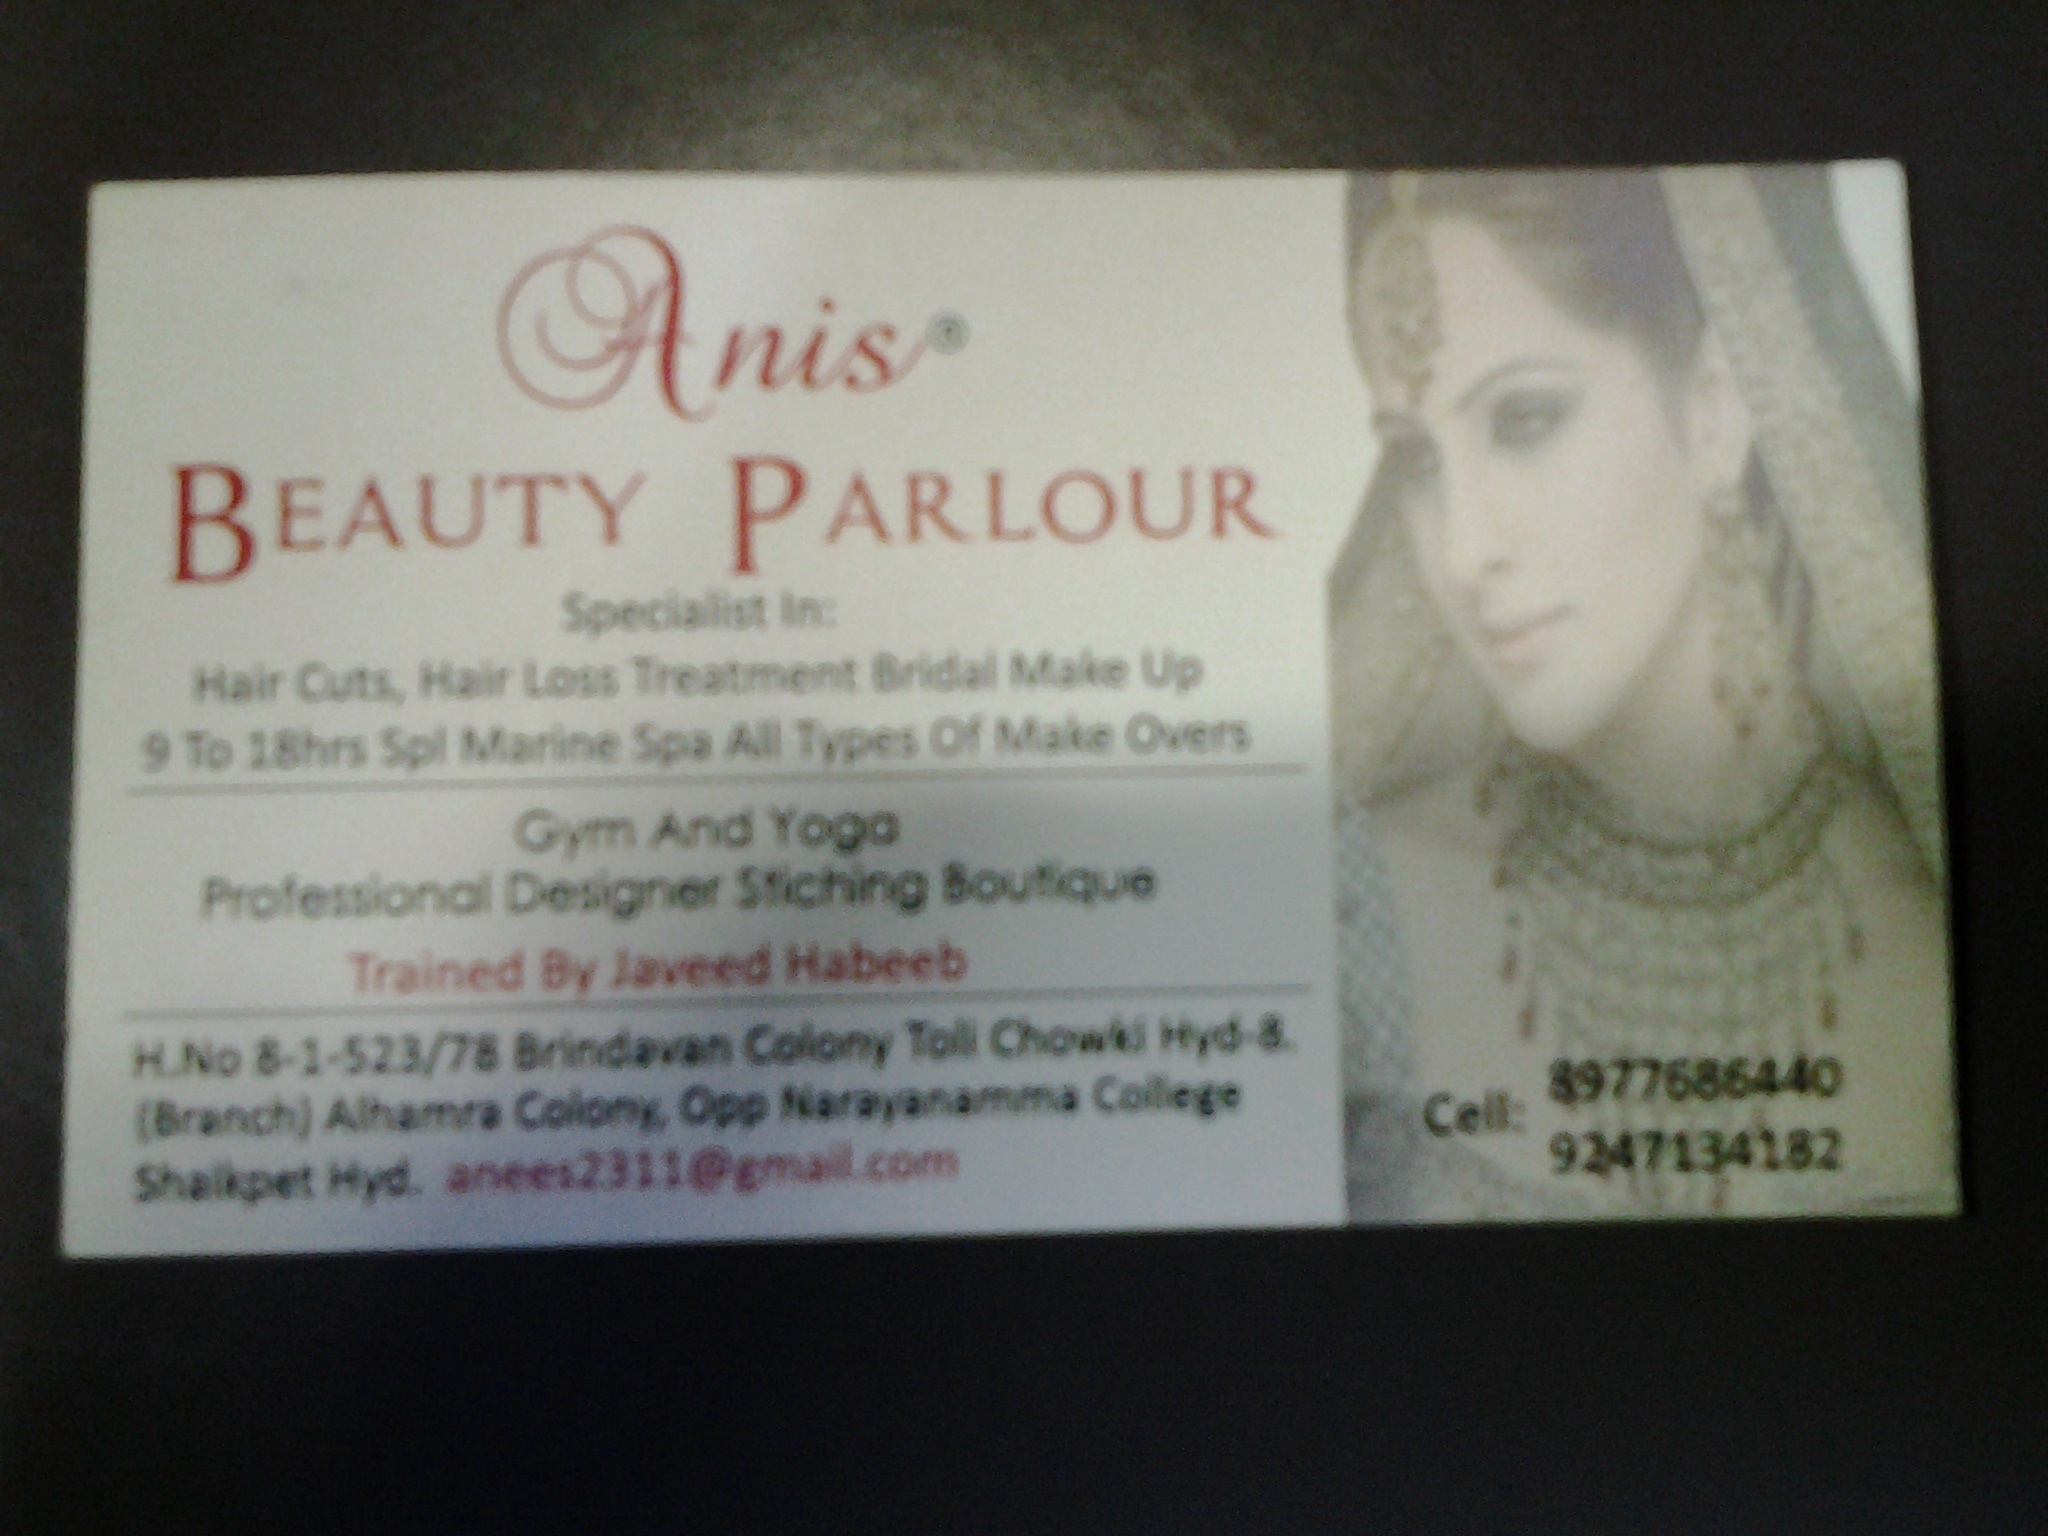 Anis Beauty Parlour